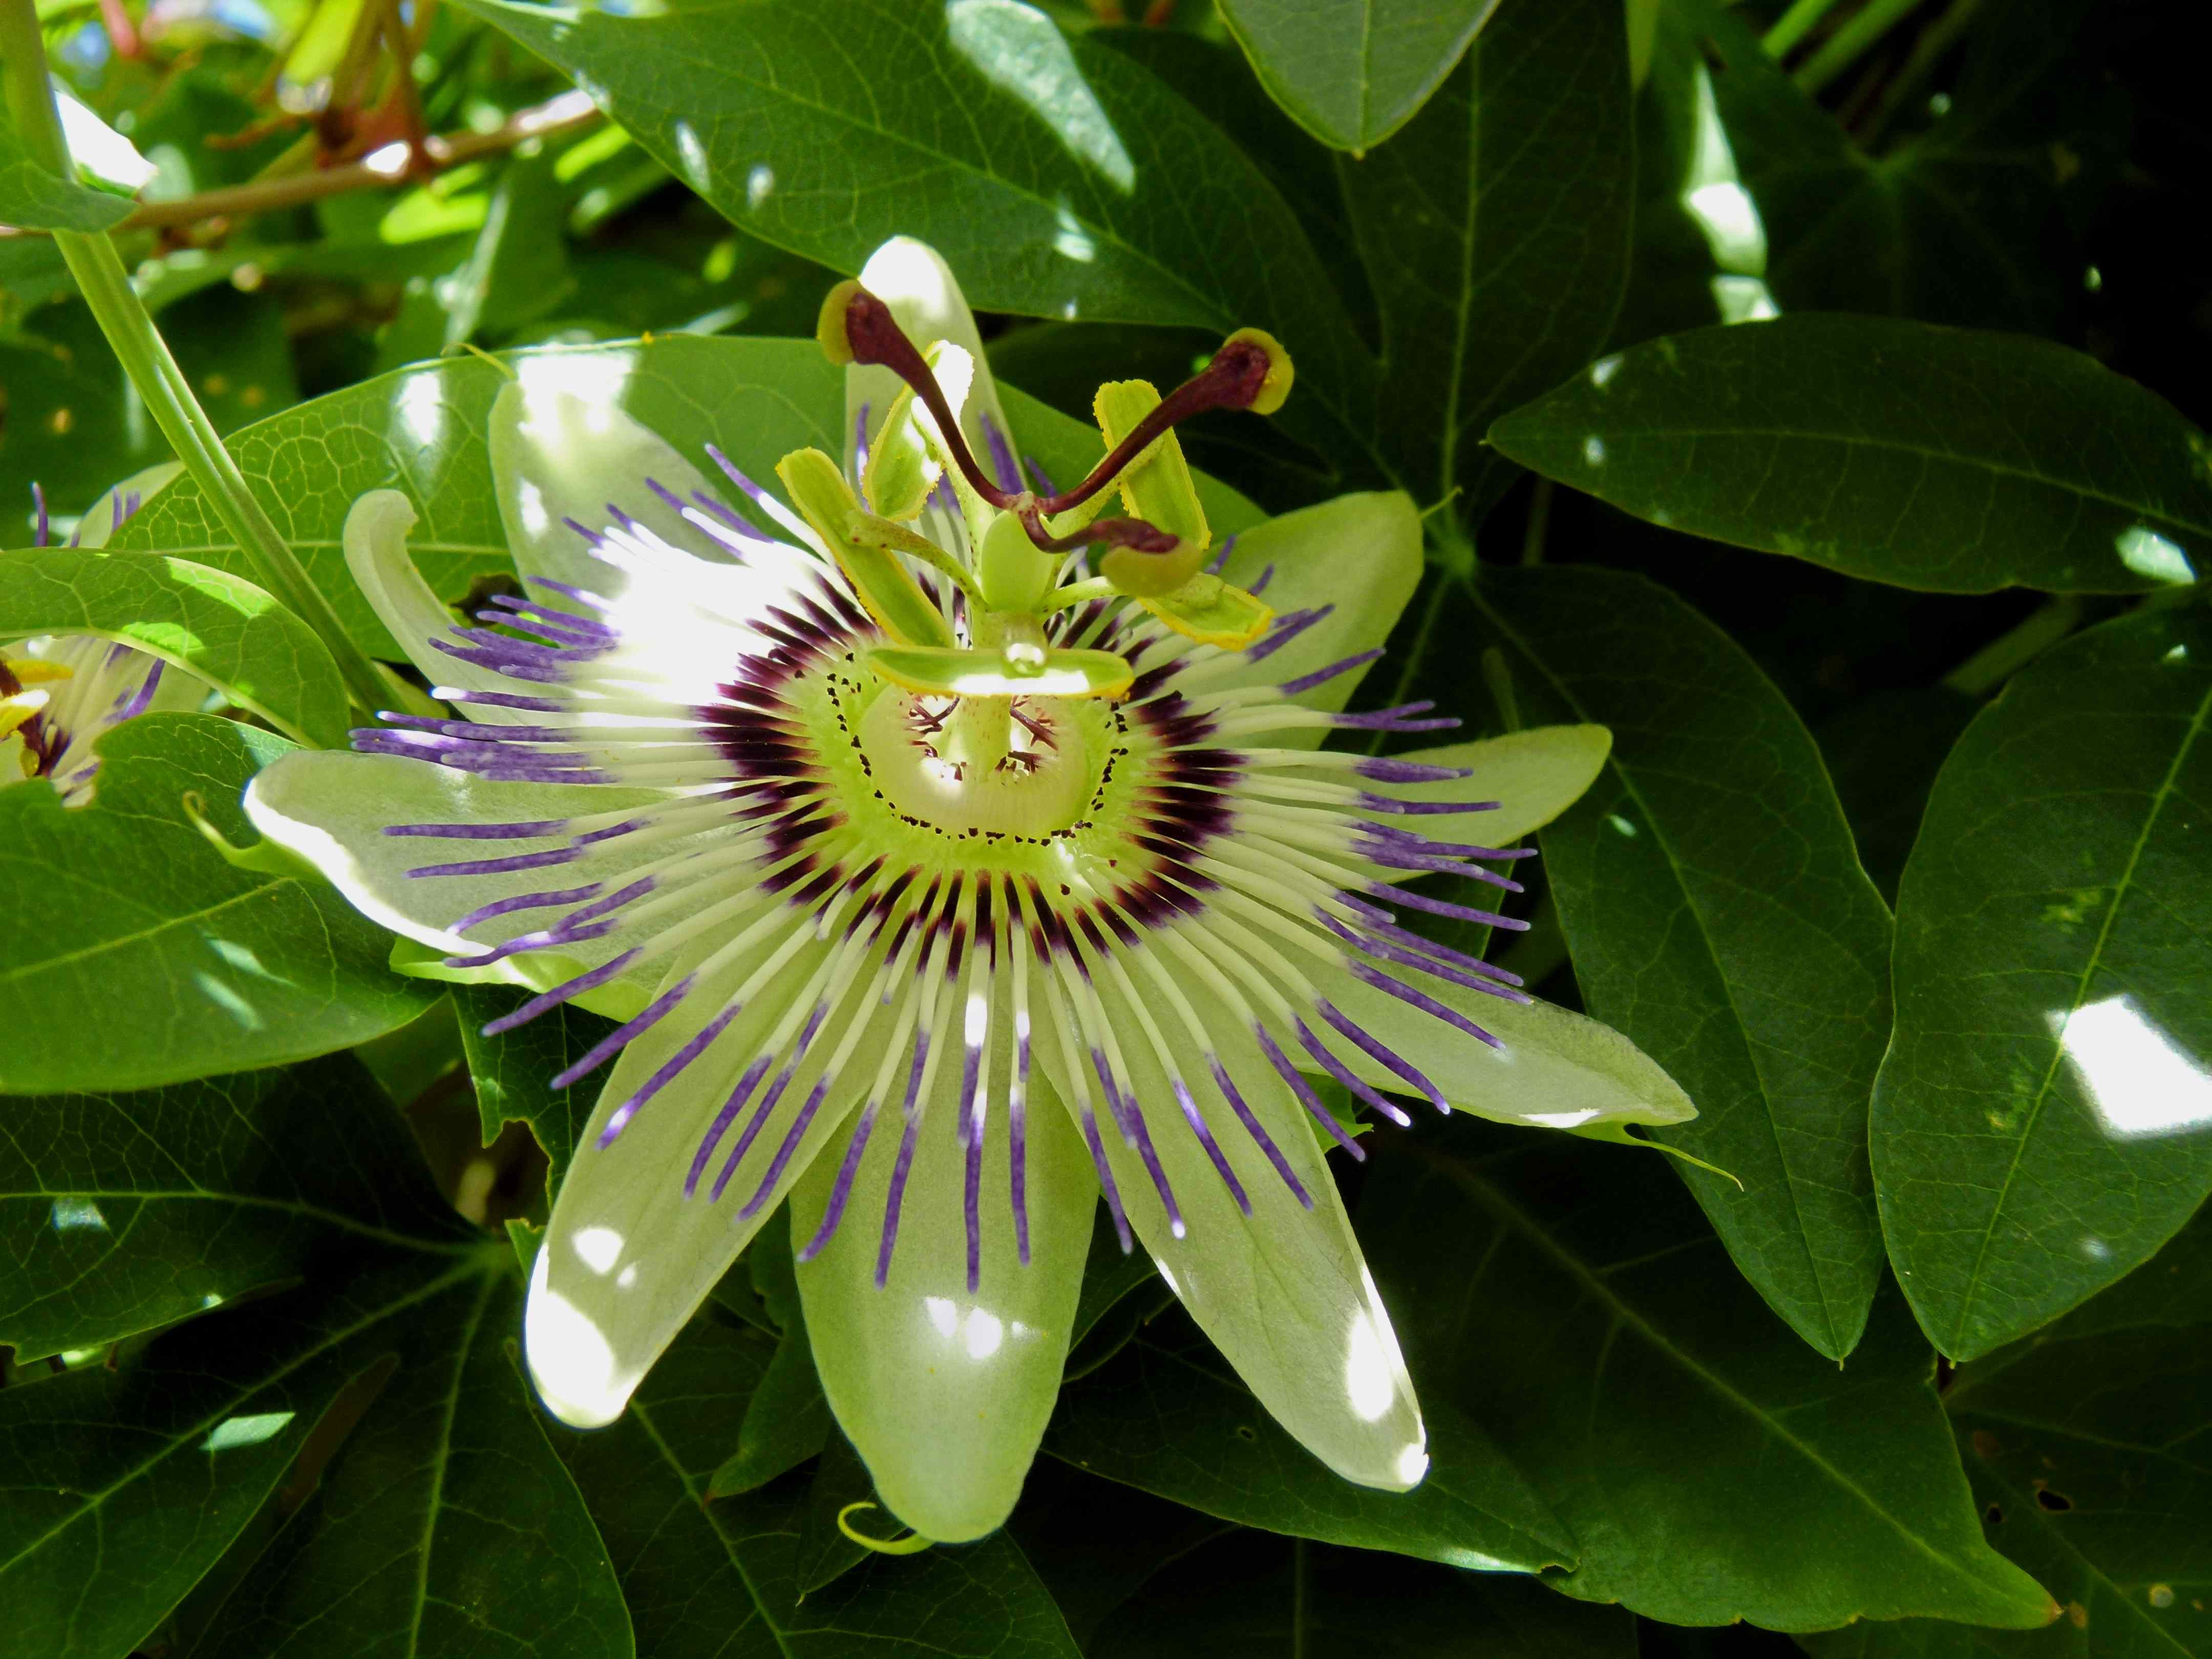 ANOTHER BEAUTIFUL DAY Key West Lou Passion fruit flower photo